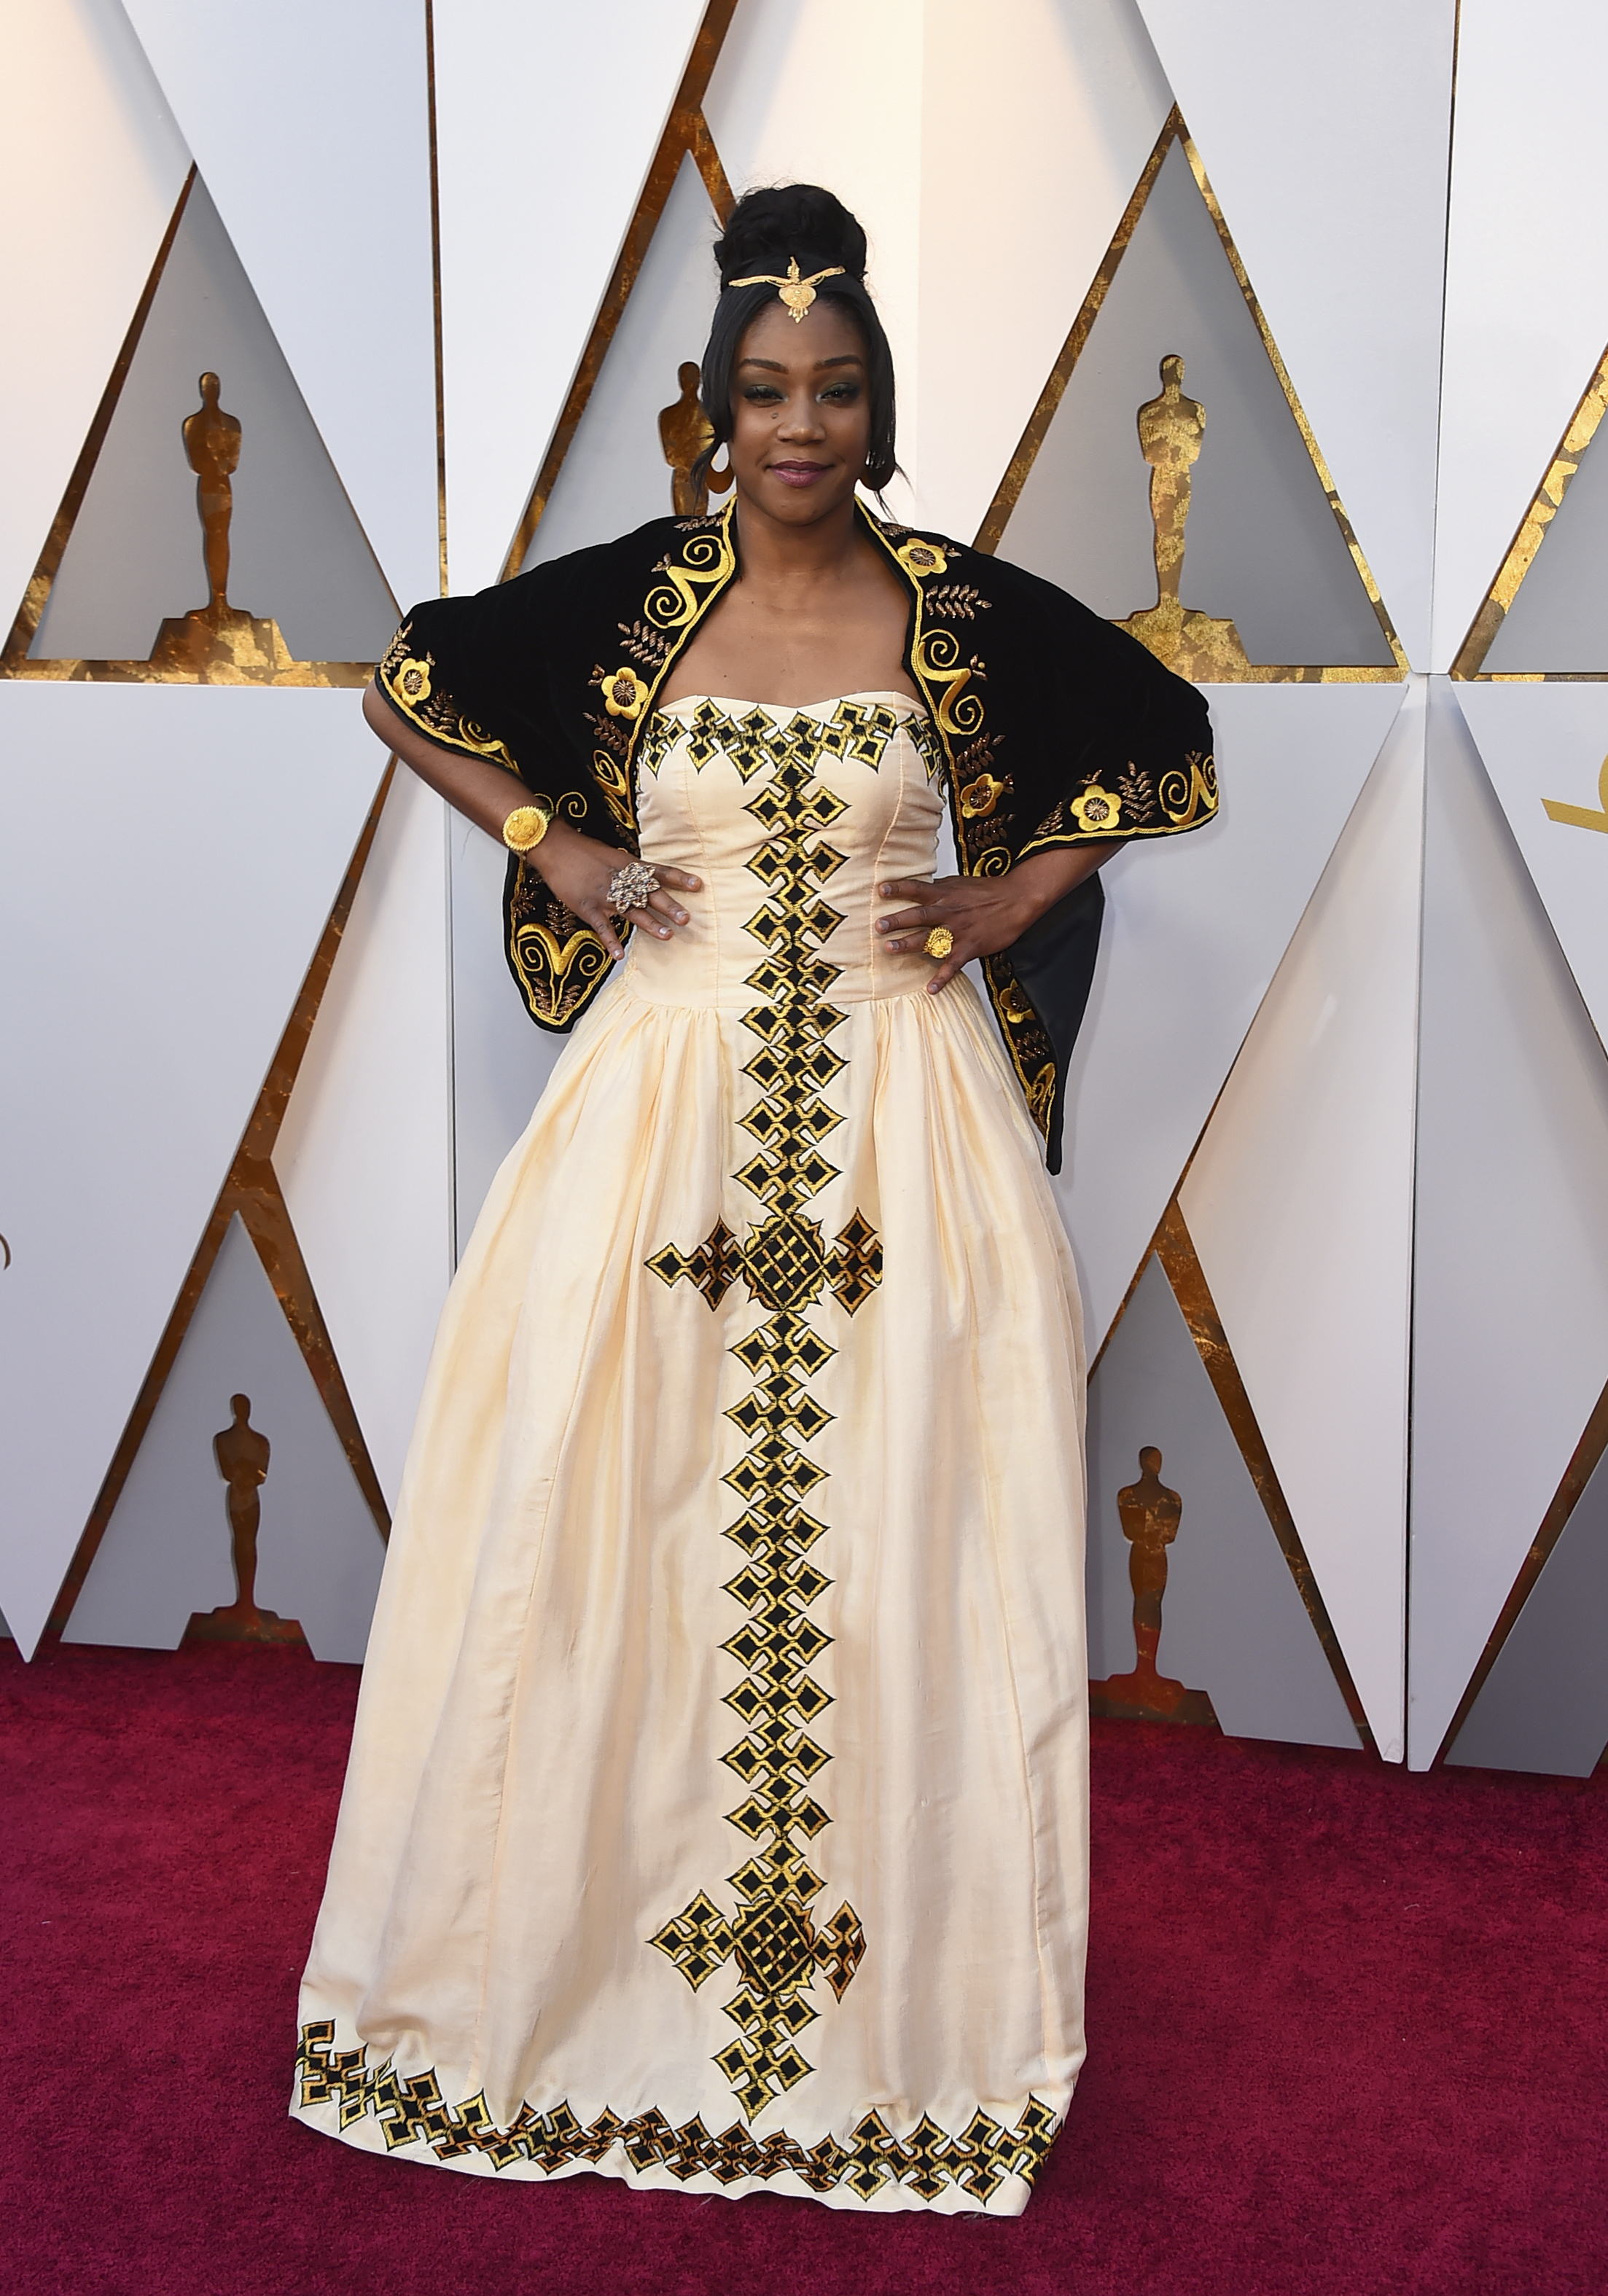 "<div class=""meta image-caption""><div class=""origin-logo origin-image none""><span>none</span></div><span class=""caption-text"">Tiffany Haddish of ''Girls Trip'' arrives at the Oscars on Sunday, March 4, 2018, at the Dolby Theatre in Los Angeles. (Jordan Strauss/Invision/AP)</span></div>"